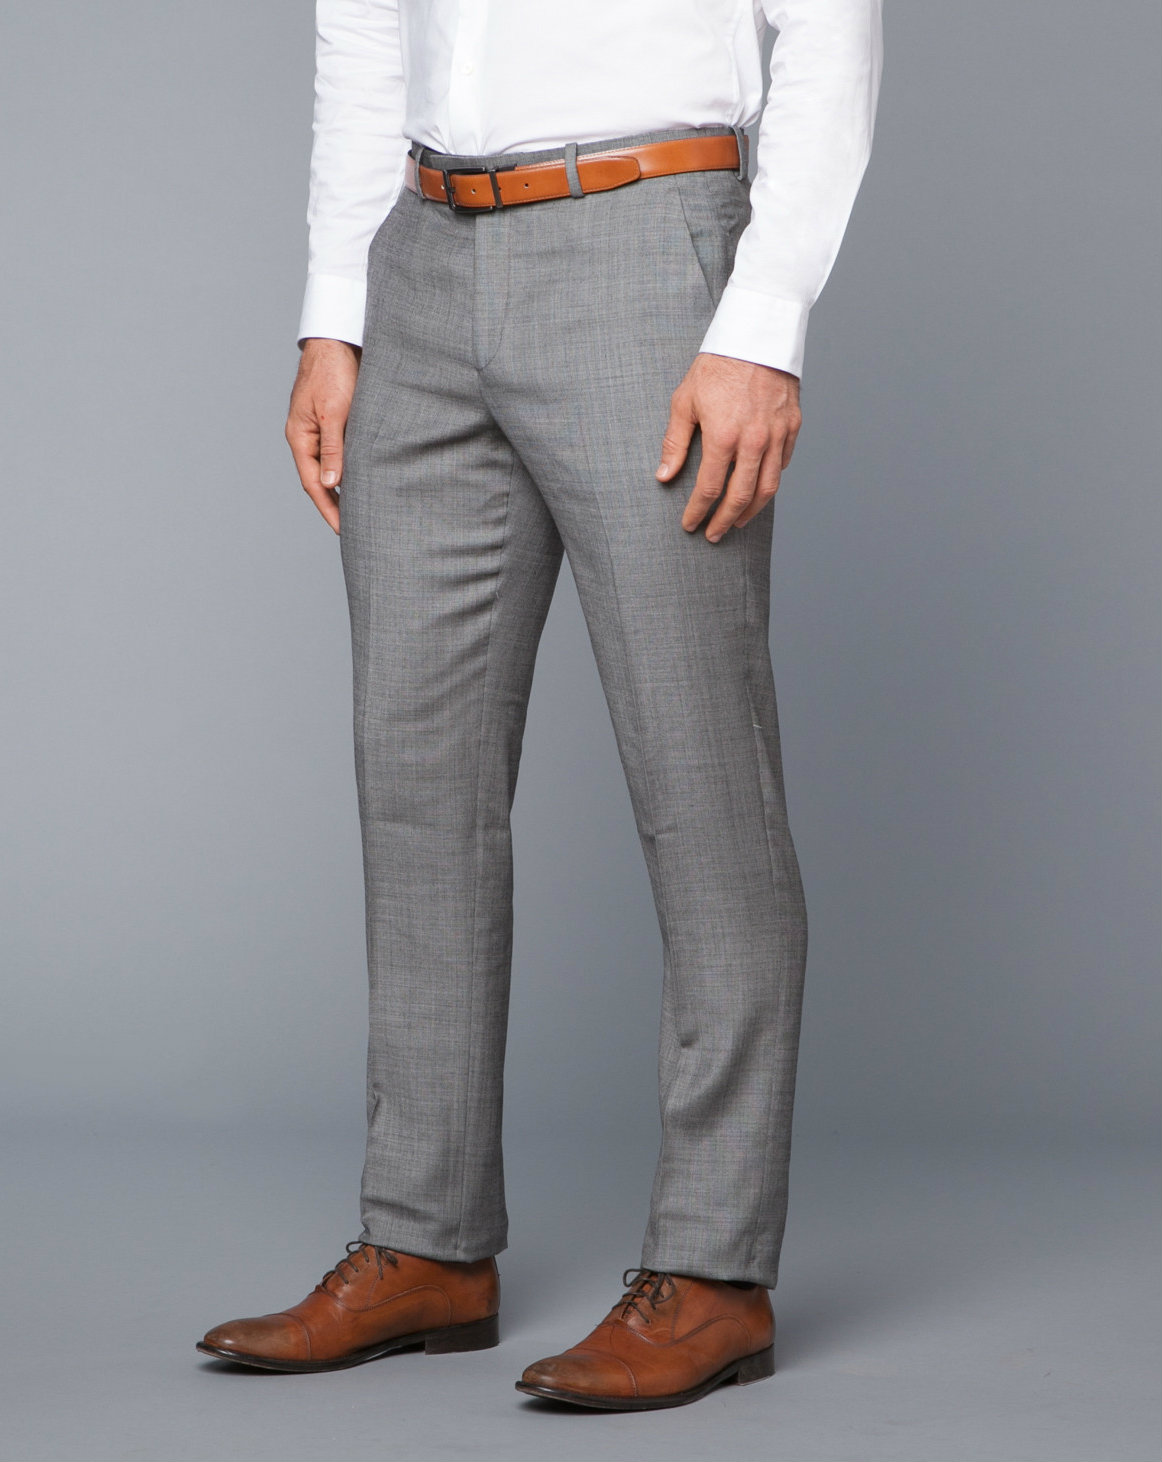 Find men's pants at ShopStyle. Shop the latest collection of men's pants from the most popular stores - all in one place.